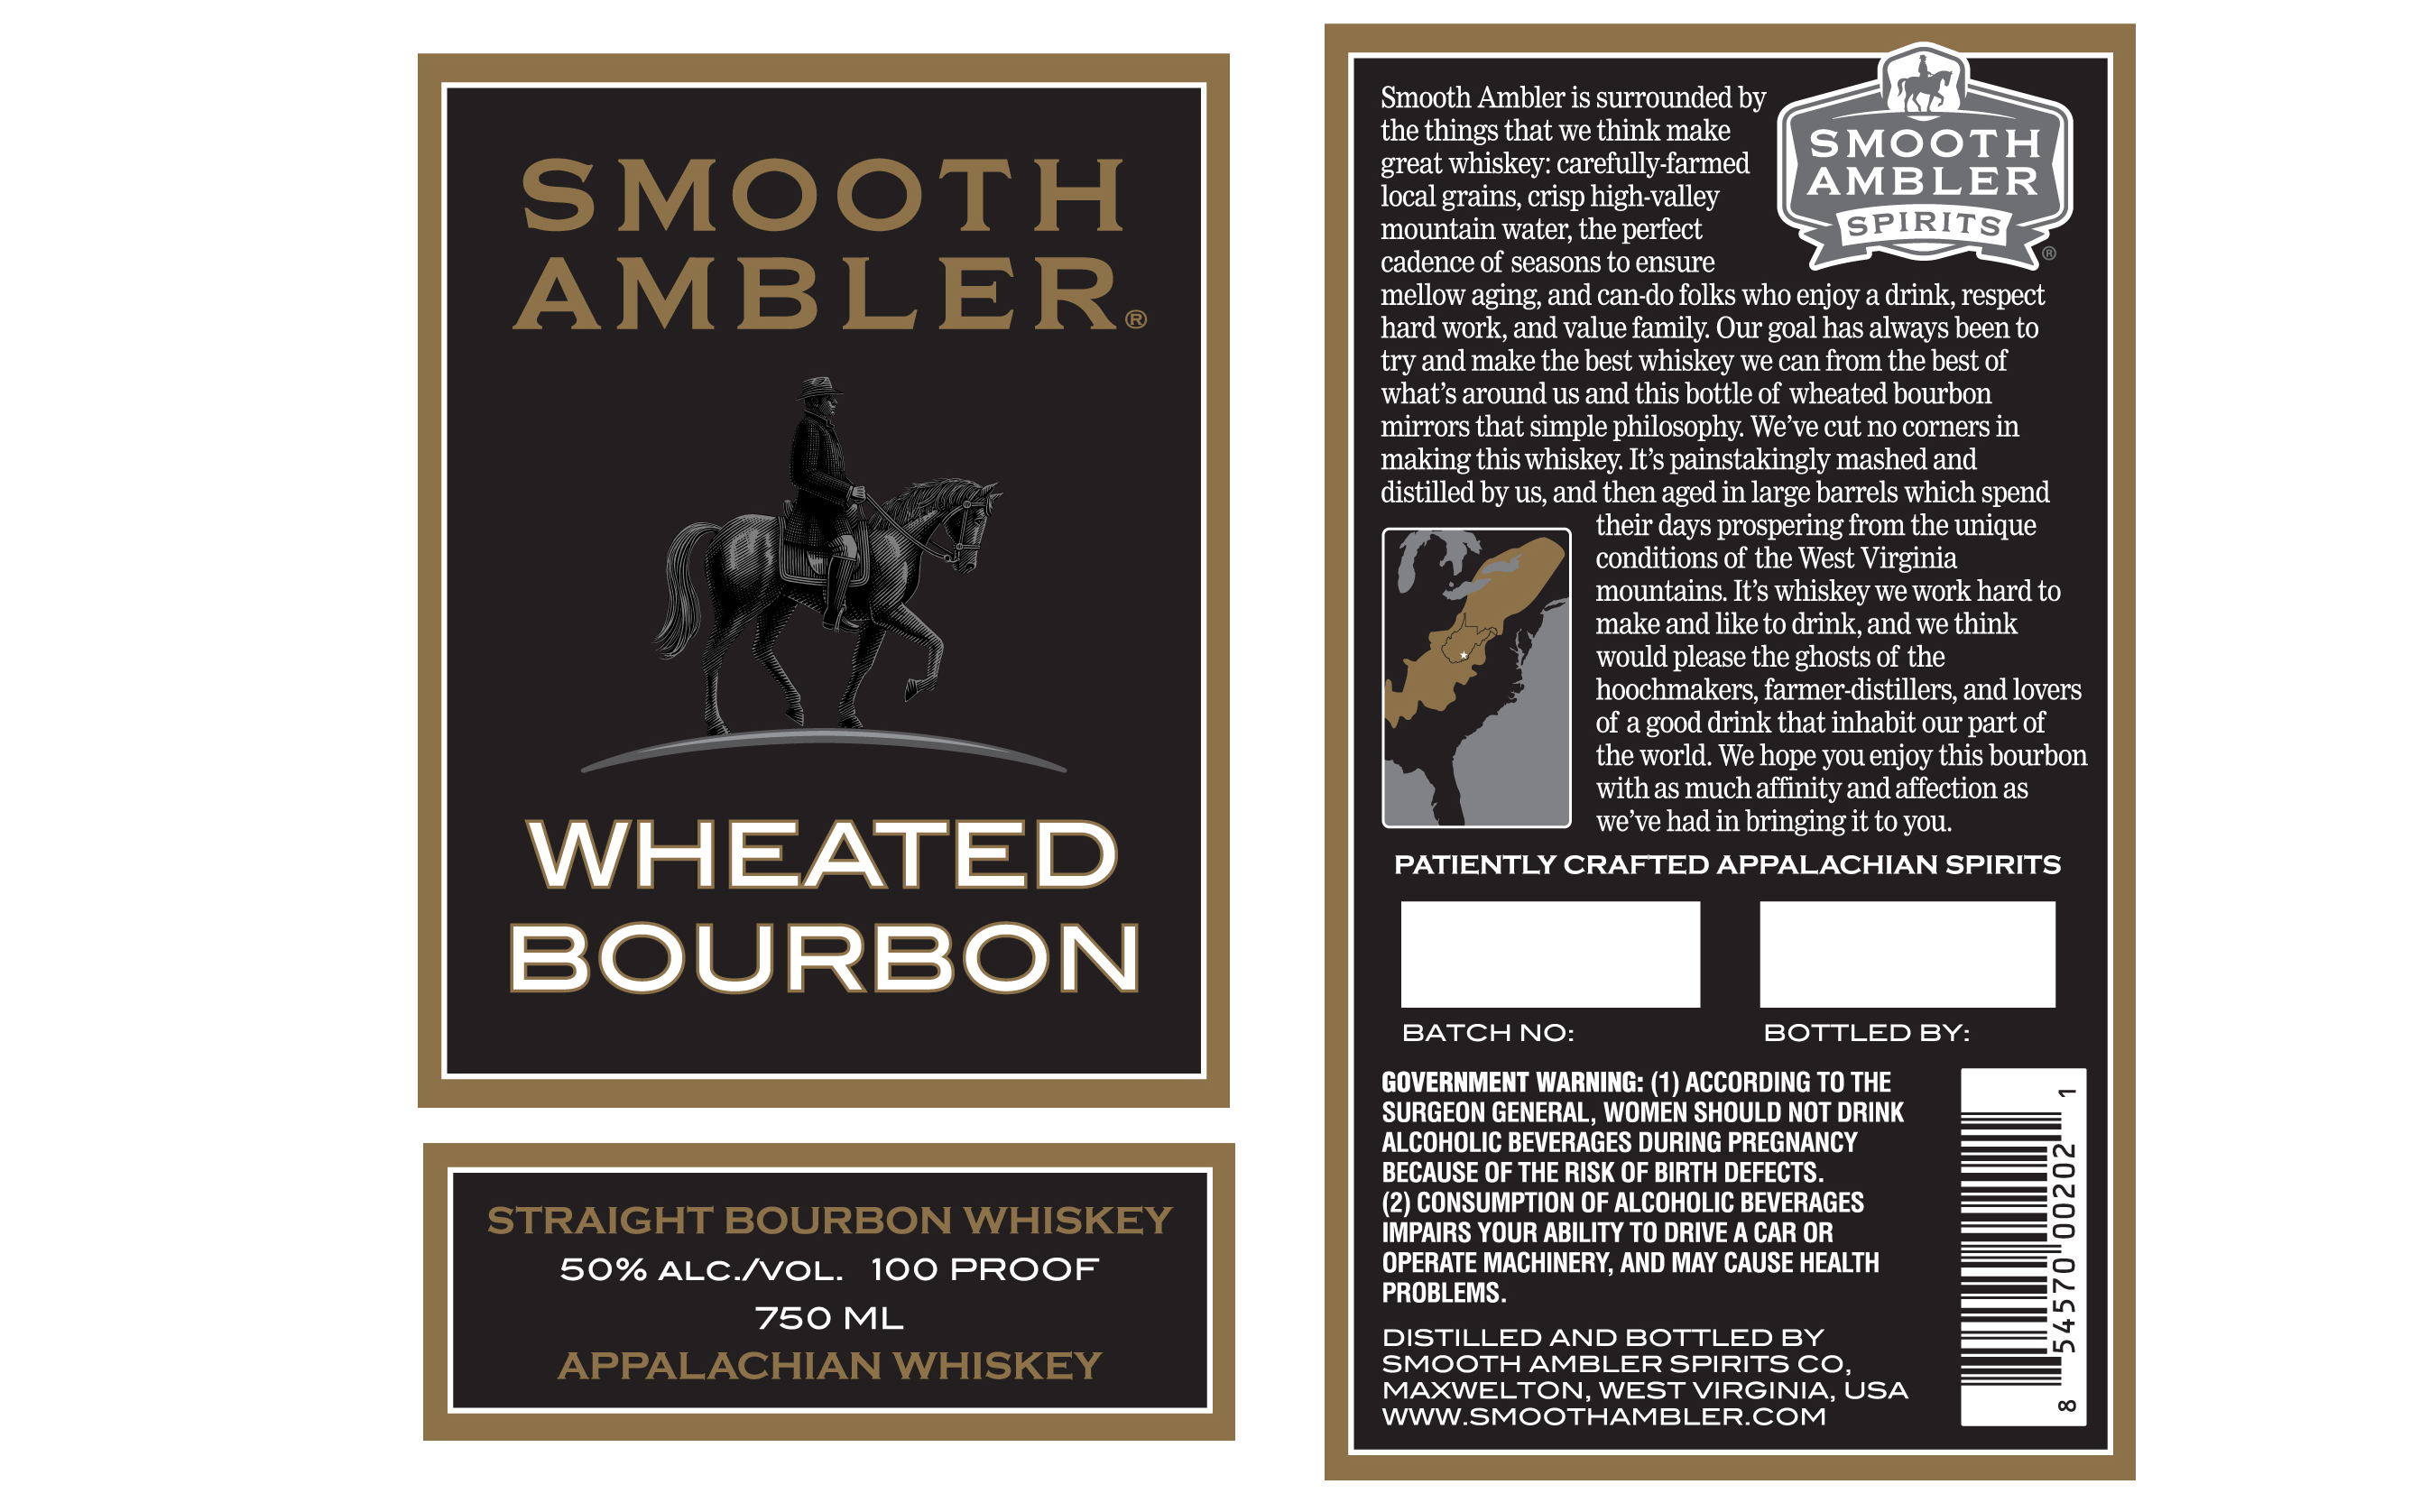 Smooth Ambler wheated bourbon